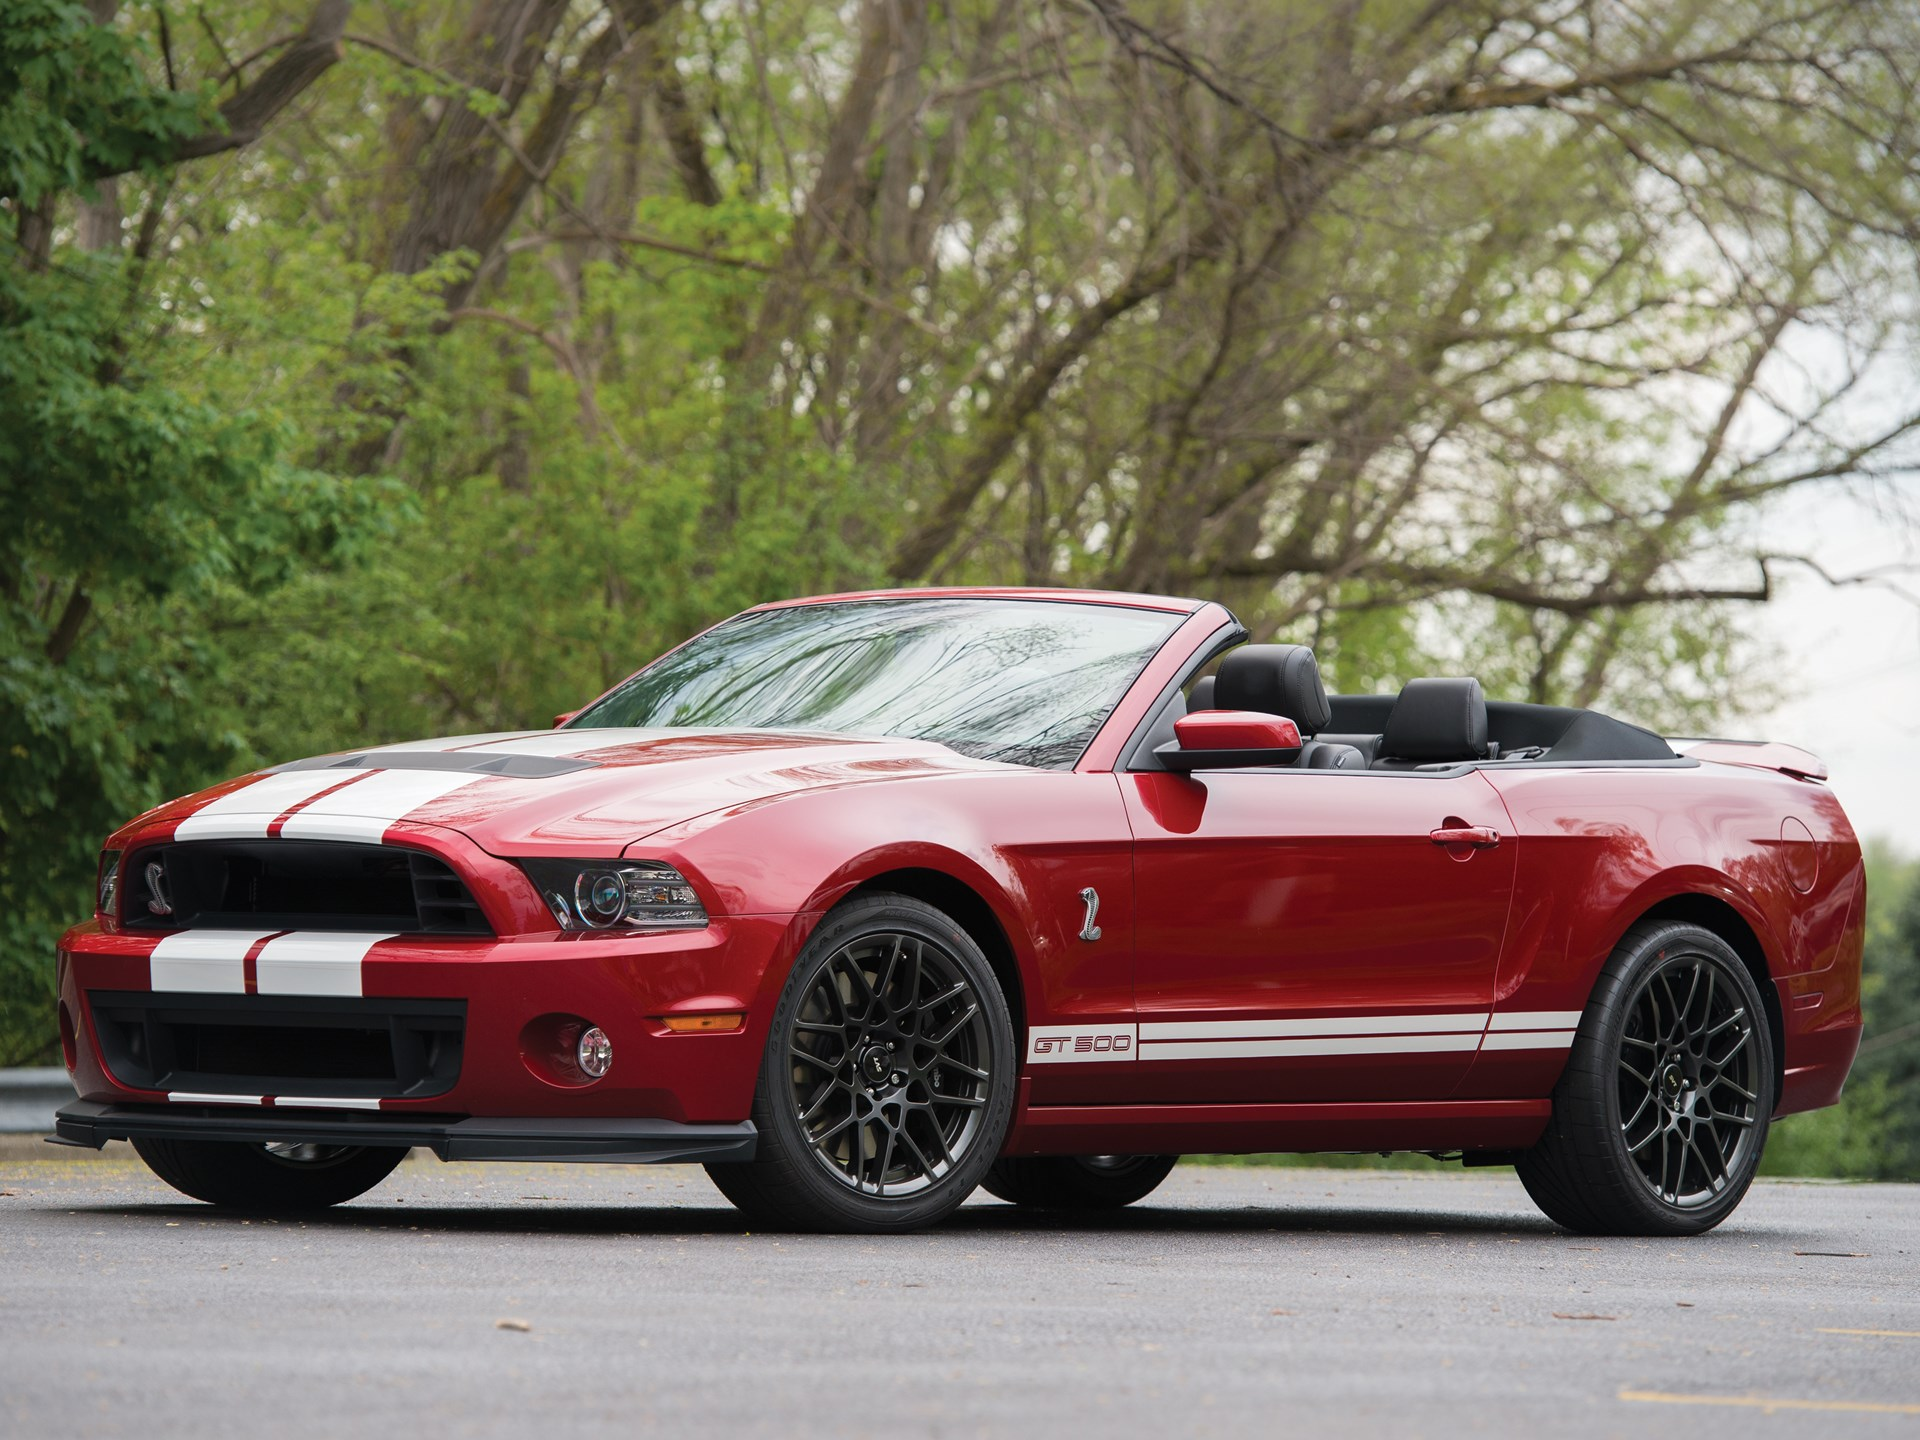 Rm Sothebys 2013 Ford Shelby Gt500 Convertible Motor City 2015 Gt 500